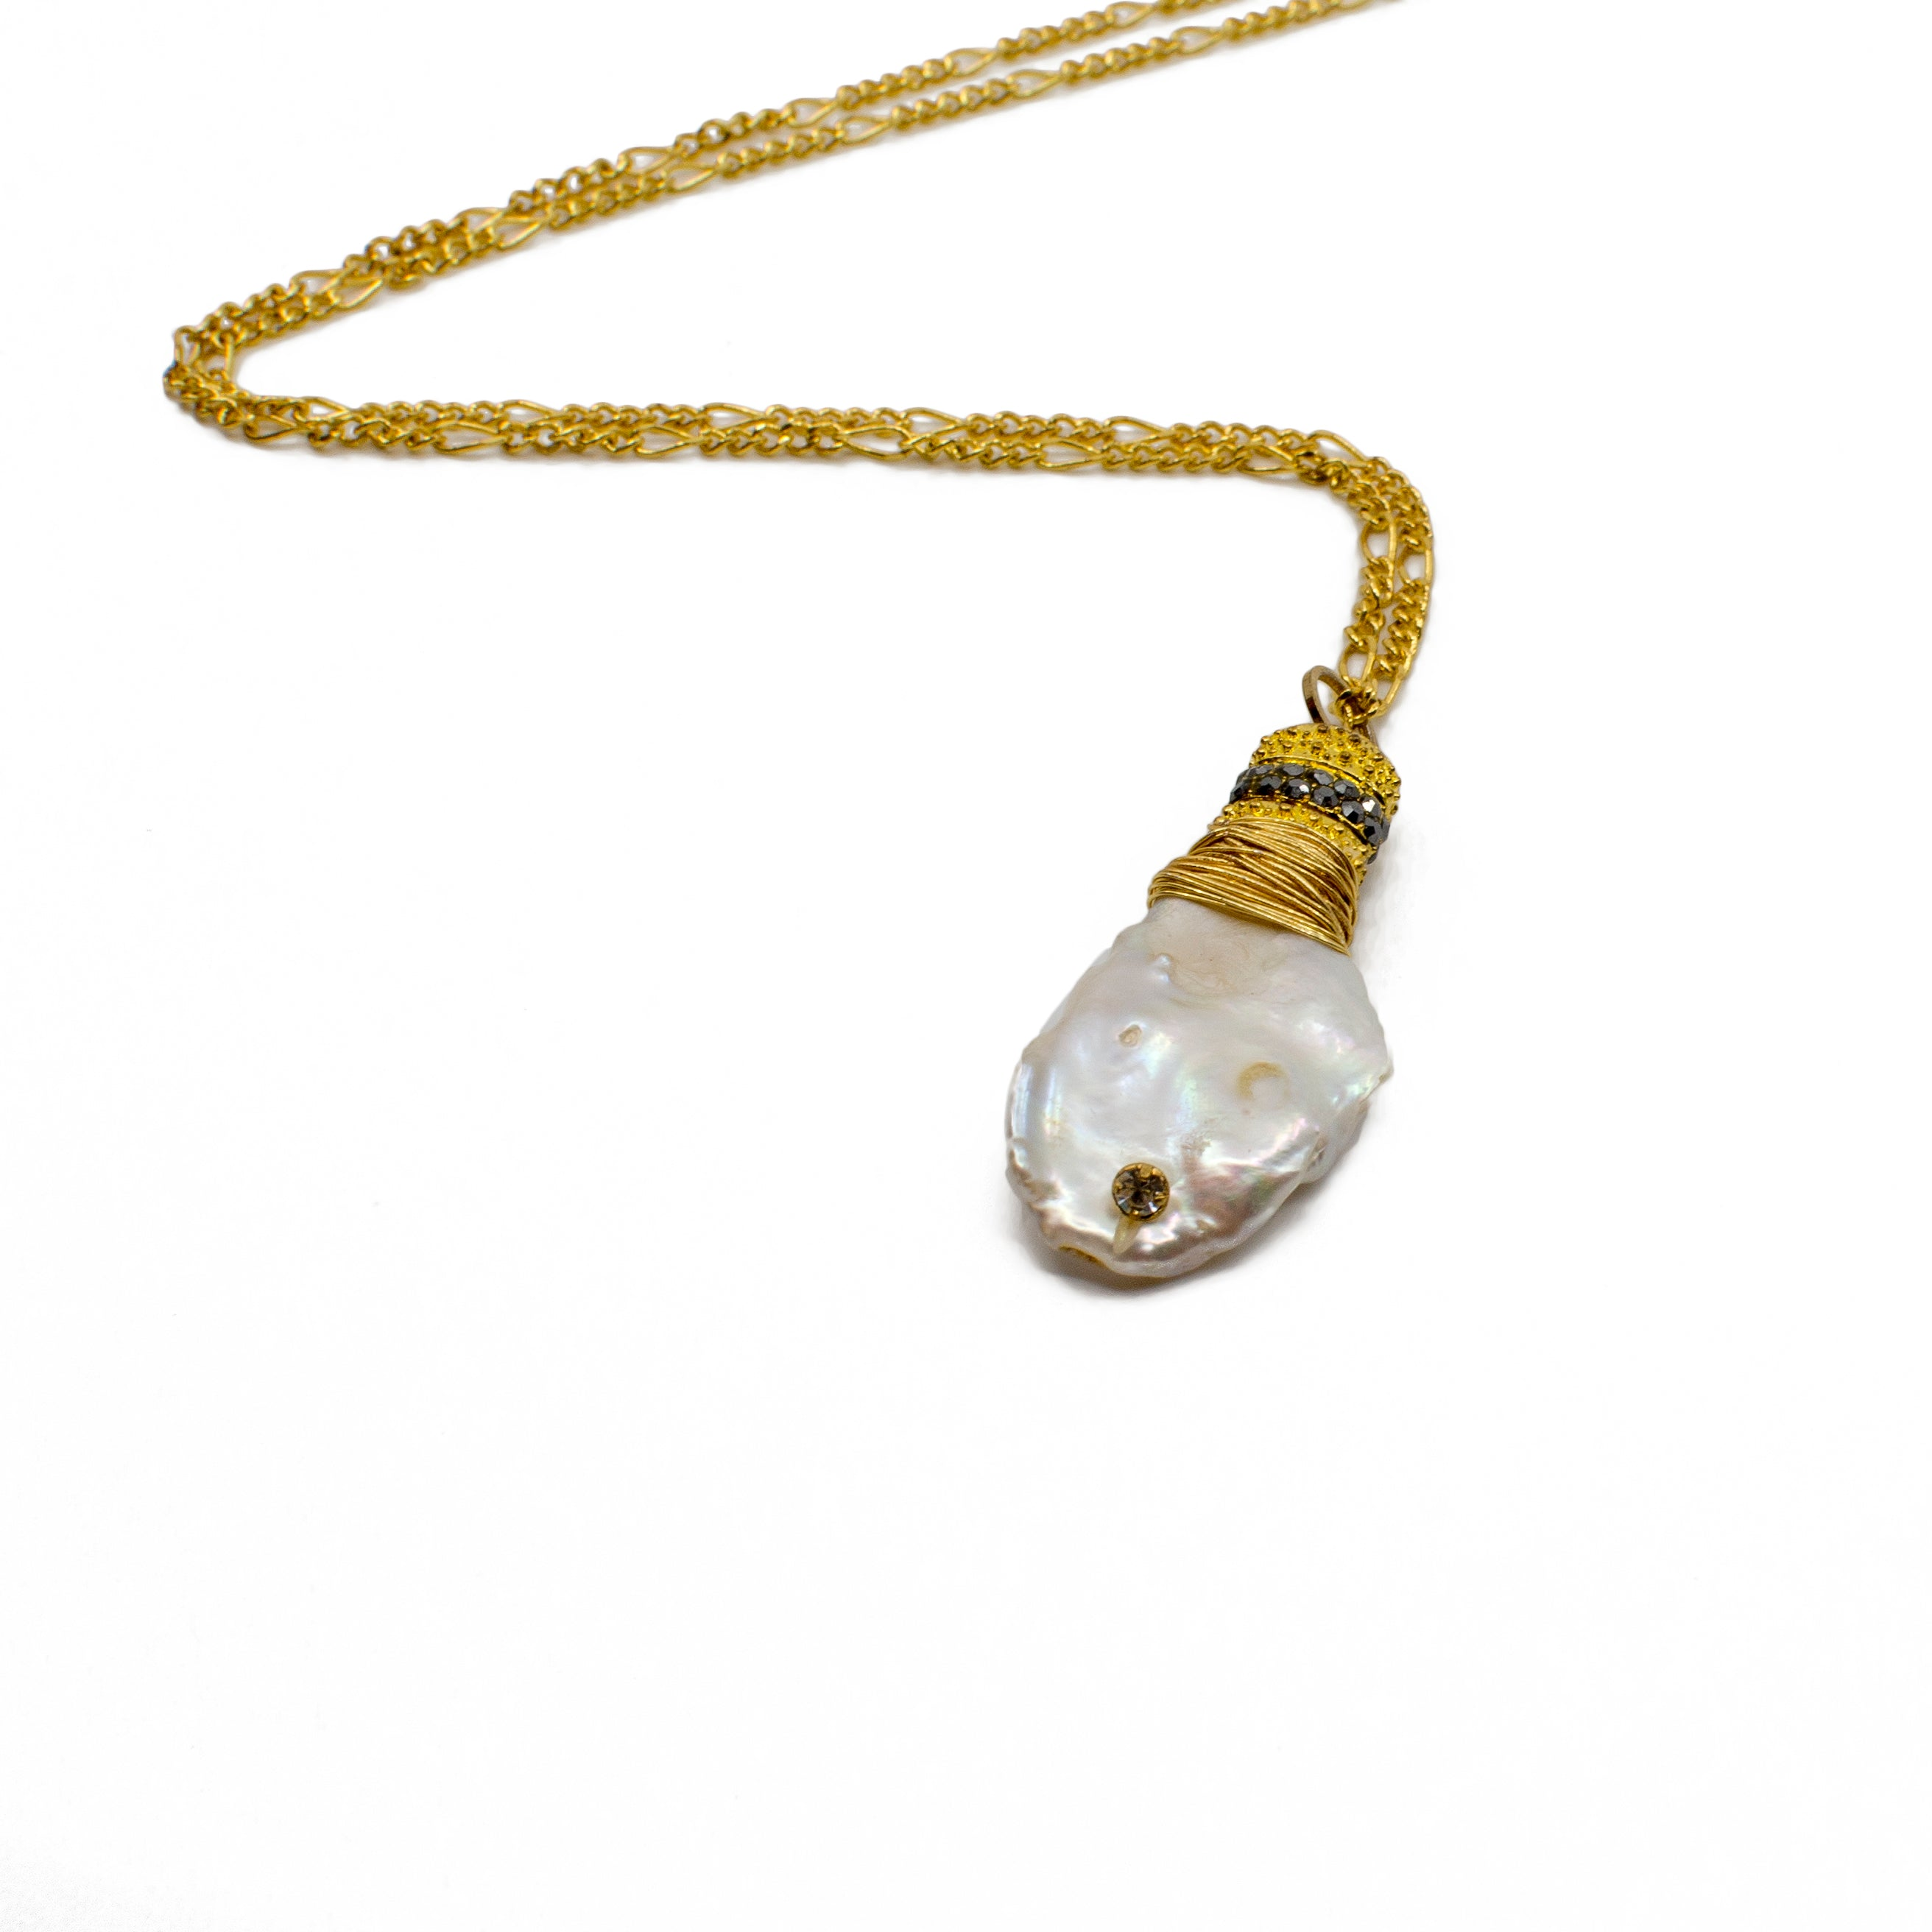 White Baroque Pearl Pendant on Gold Plated Chain